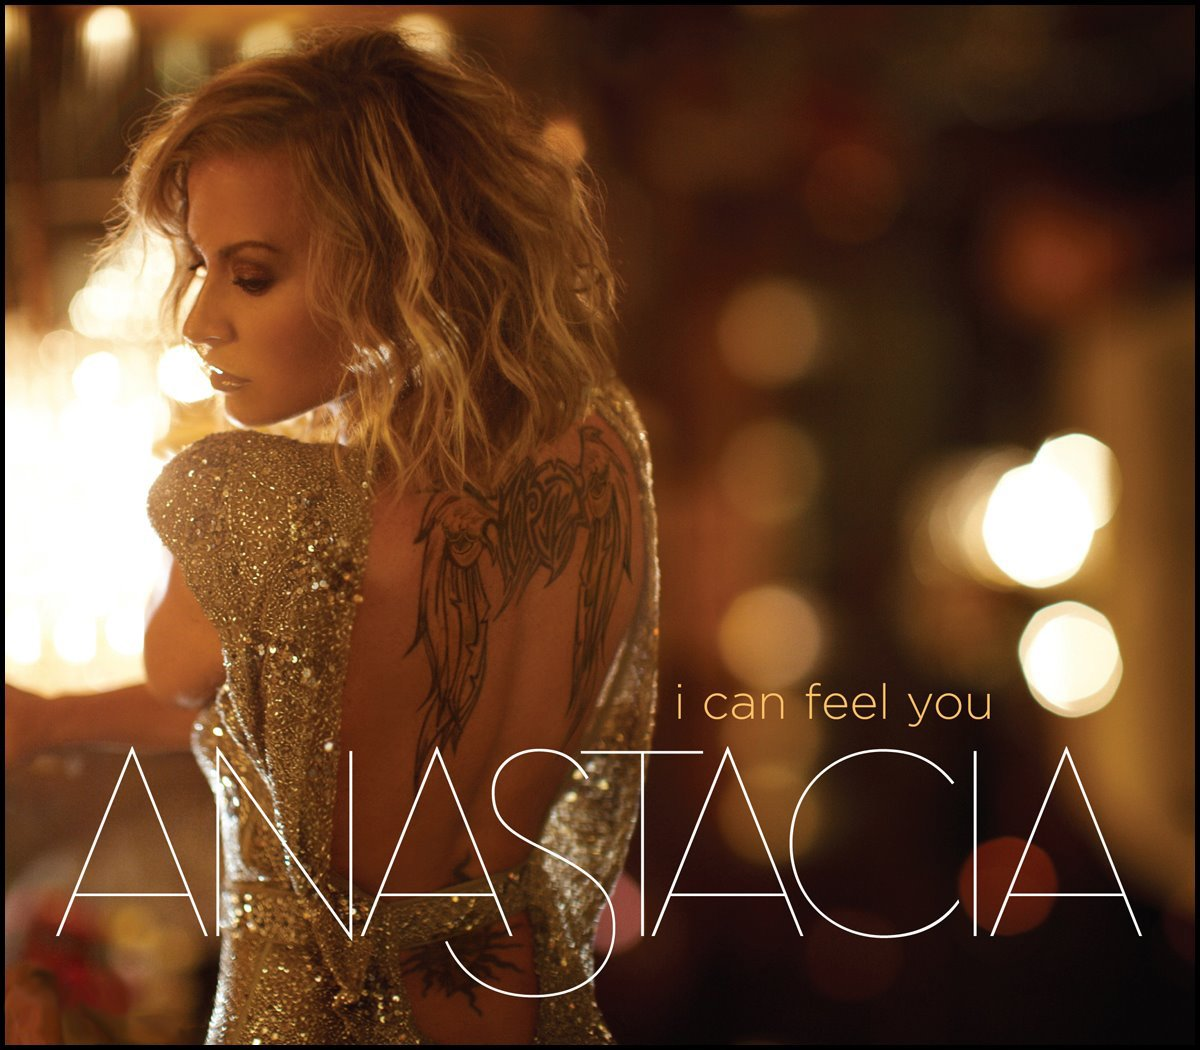 http://3.bp.blogspot.com/_BeQDFKvSyc8/TLVZT4SA4iI/AAAAAAAACP8/WaL-qa0QLwY/s1600/Anastacia_-_I_Can_Feel_You_(Official_Single_Cover).jpg